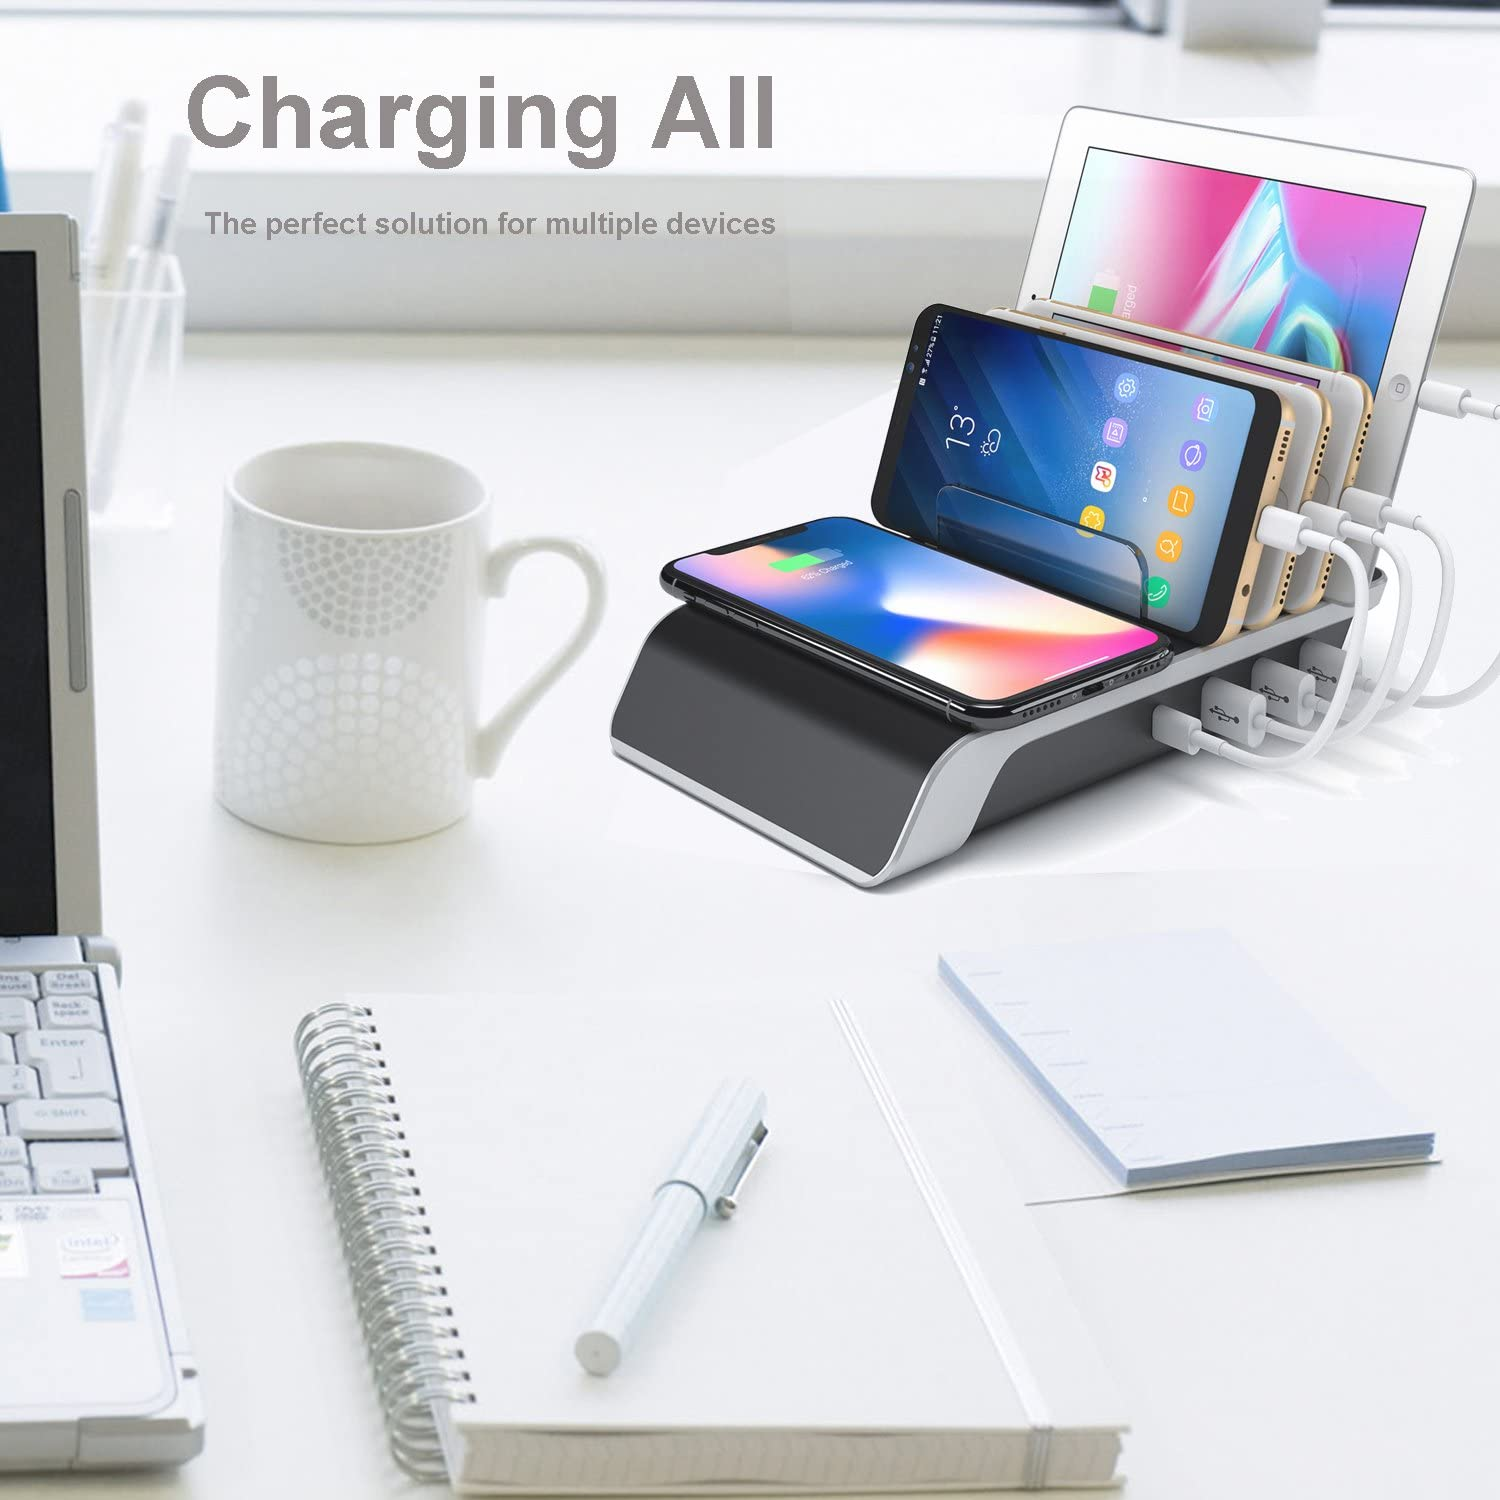 Desktop Charging QI Station Wireless Charging Pad 5-in-1 Multiple Charger Dock Organizer Stand with 4USB Ports for iPhone Ipad Samsung Phone Charging Station